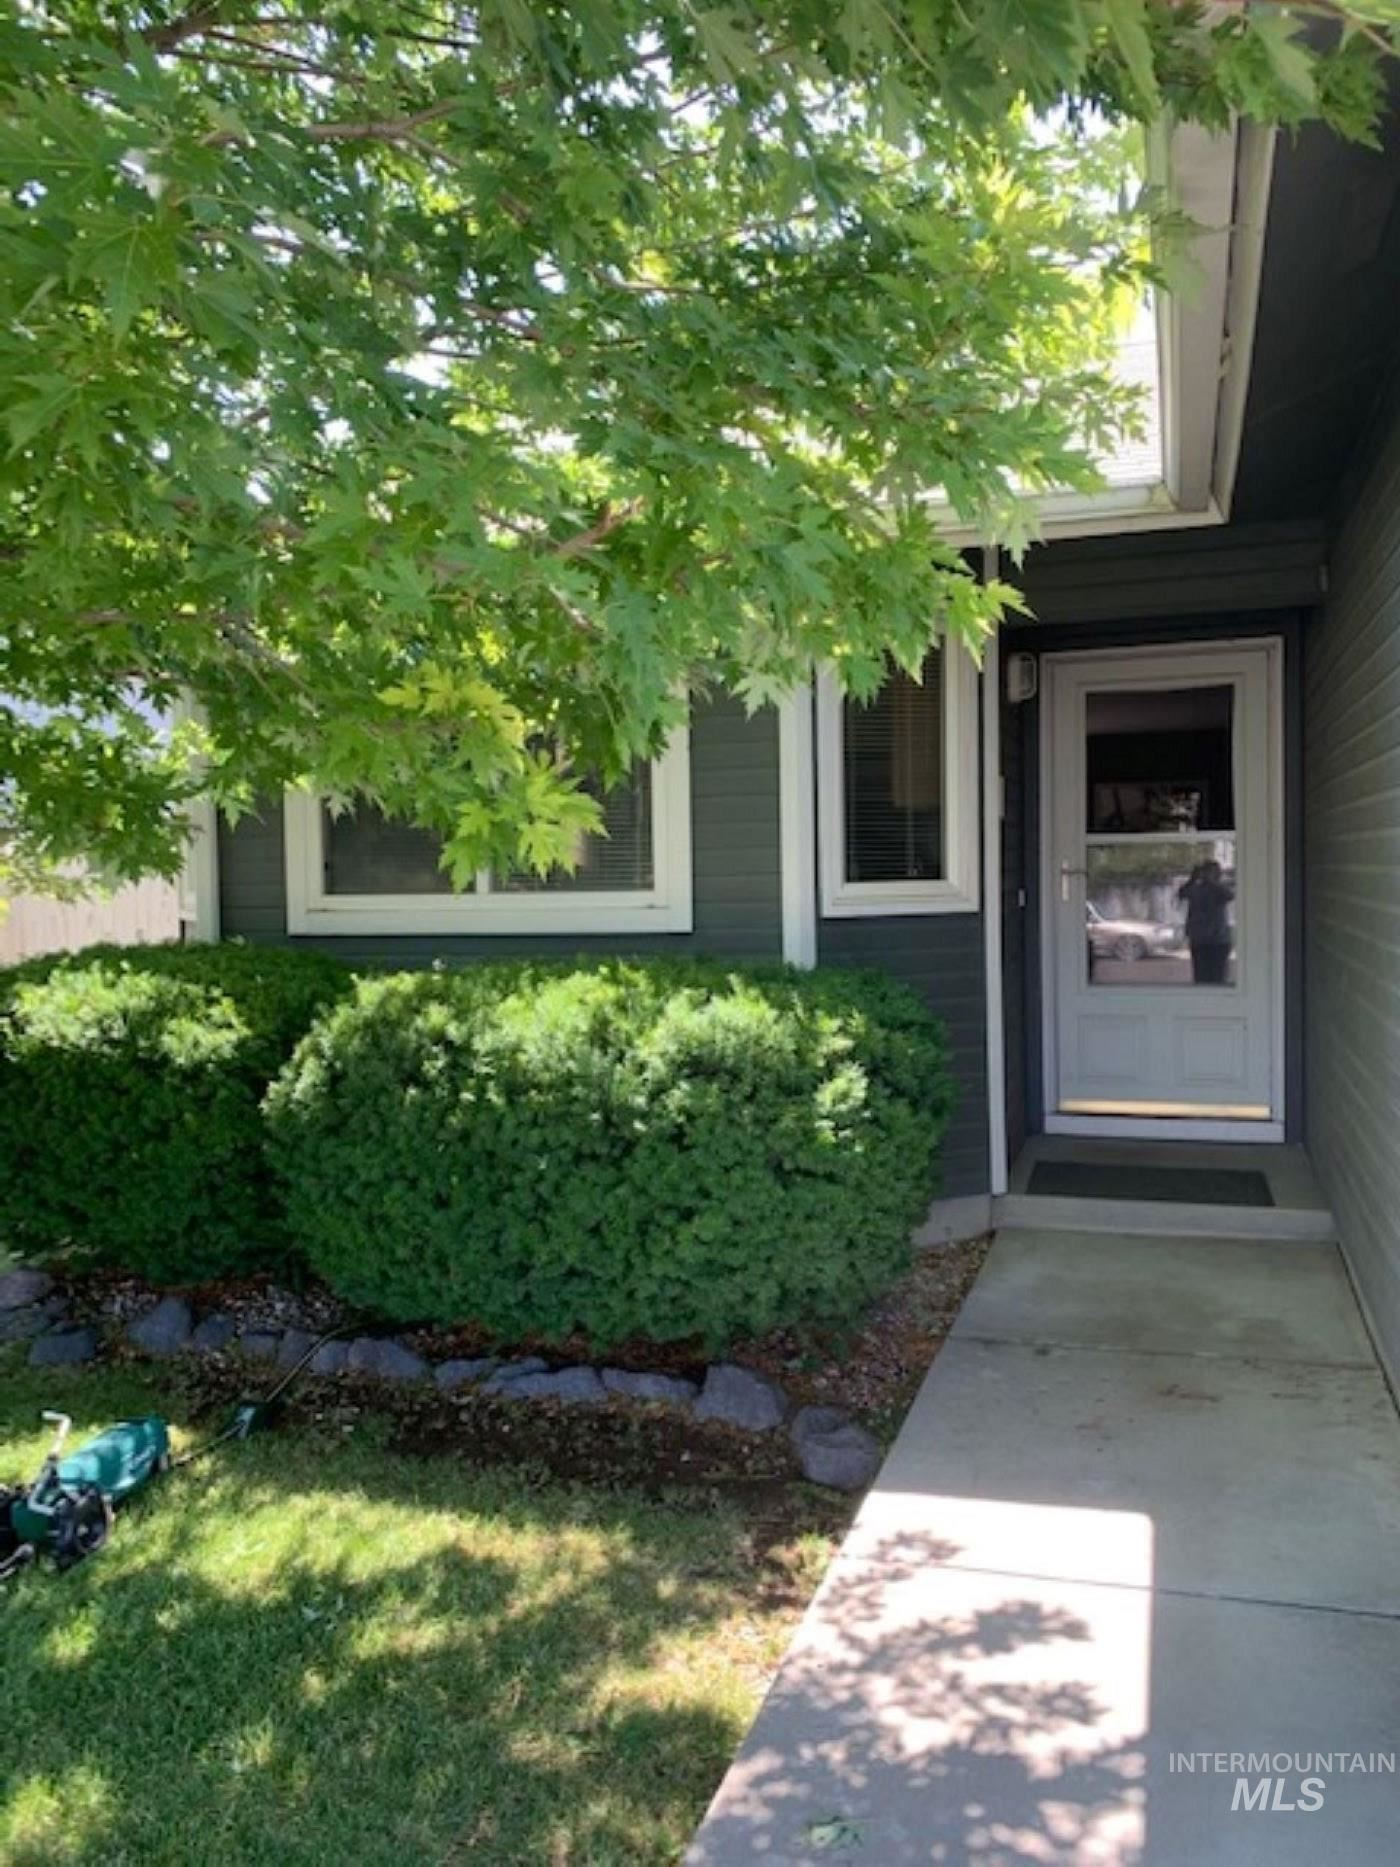 10927 W Irving Court, Boise, ID 83713 - MLS#: 98775380